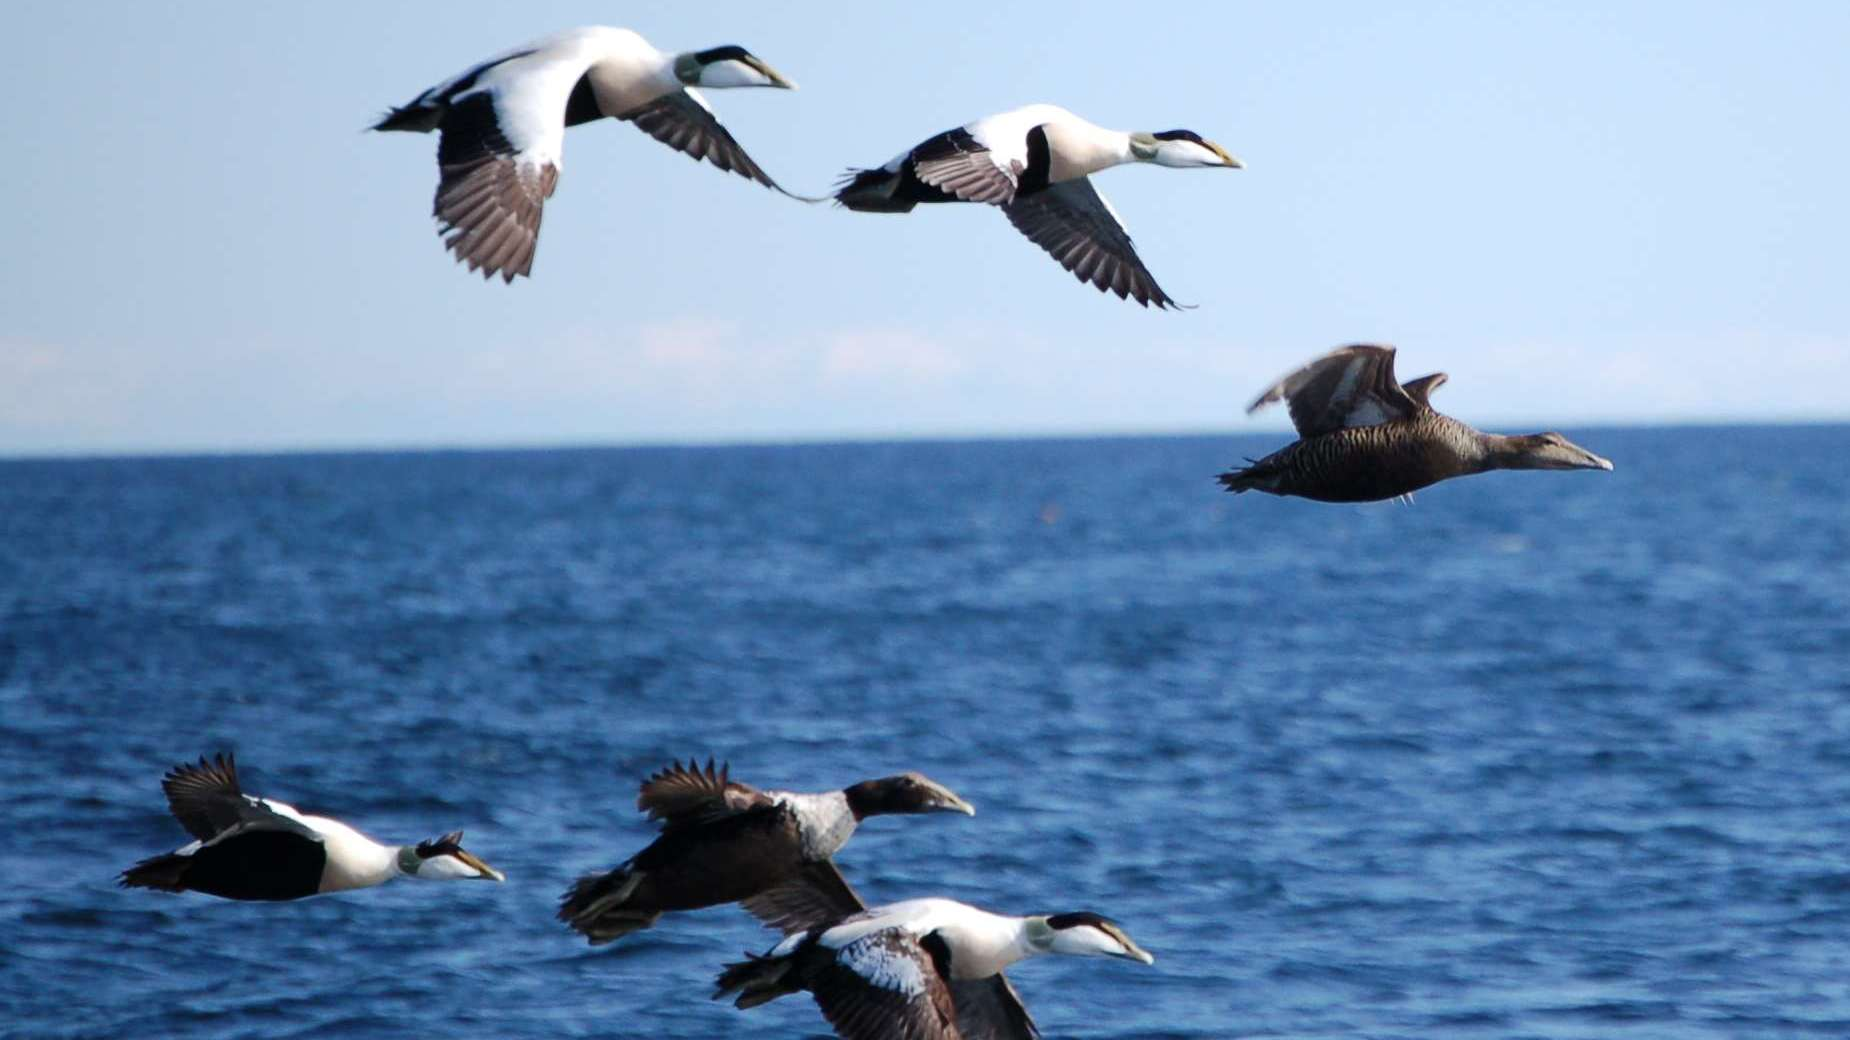 Eiderenten im Flug; Foto: Arnstein Rønning / Flock in flight; Stavern, Norway / CC BY 3.0